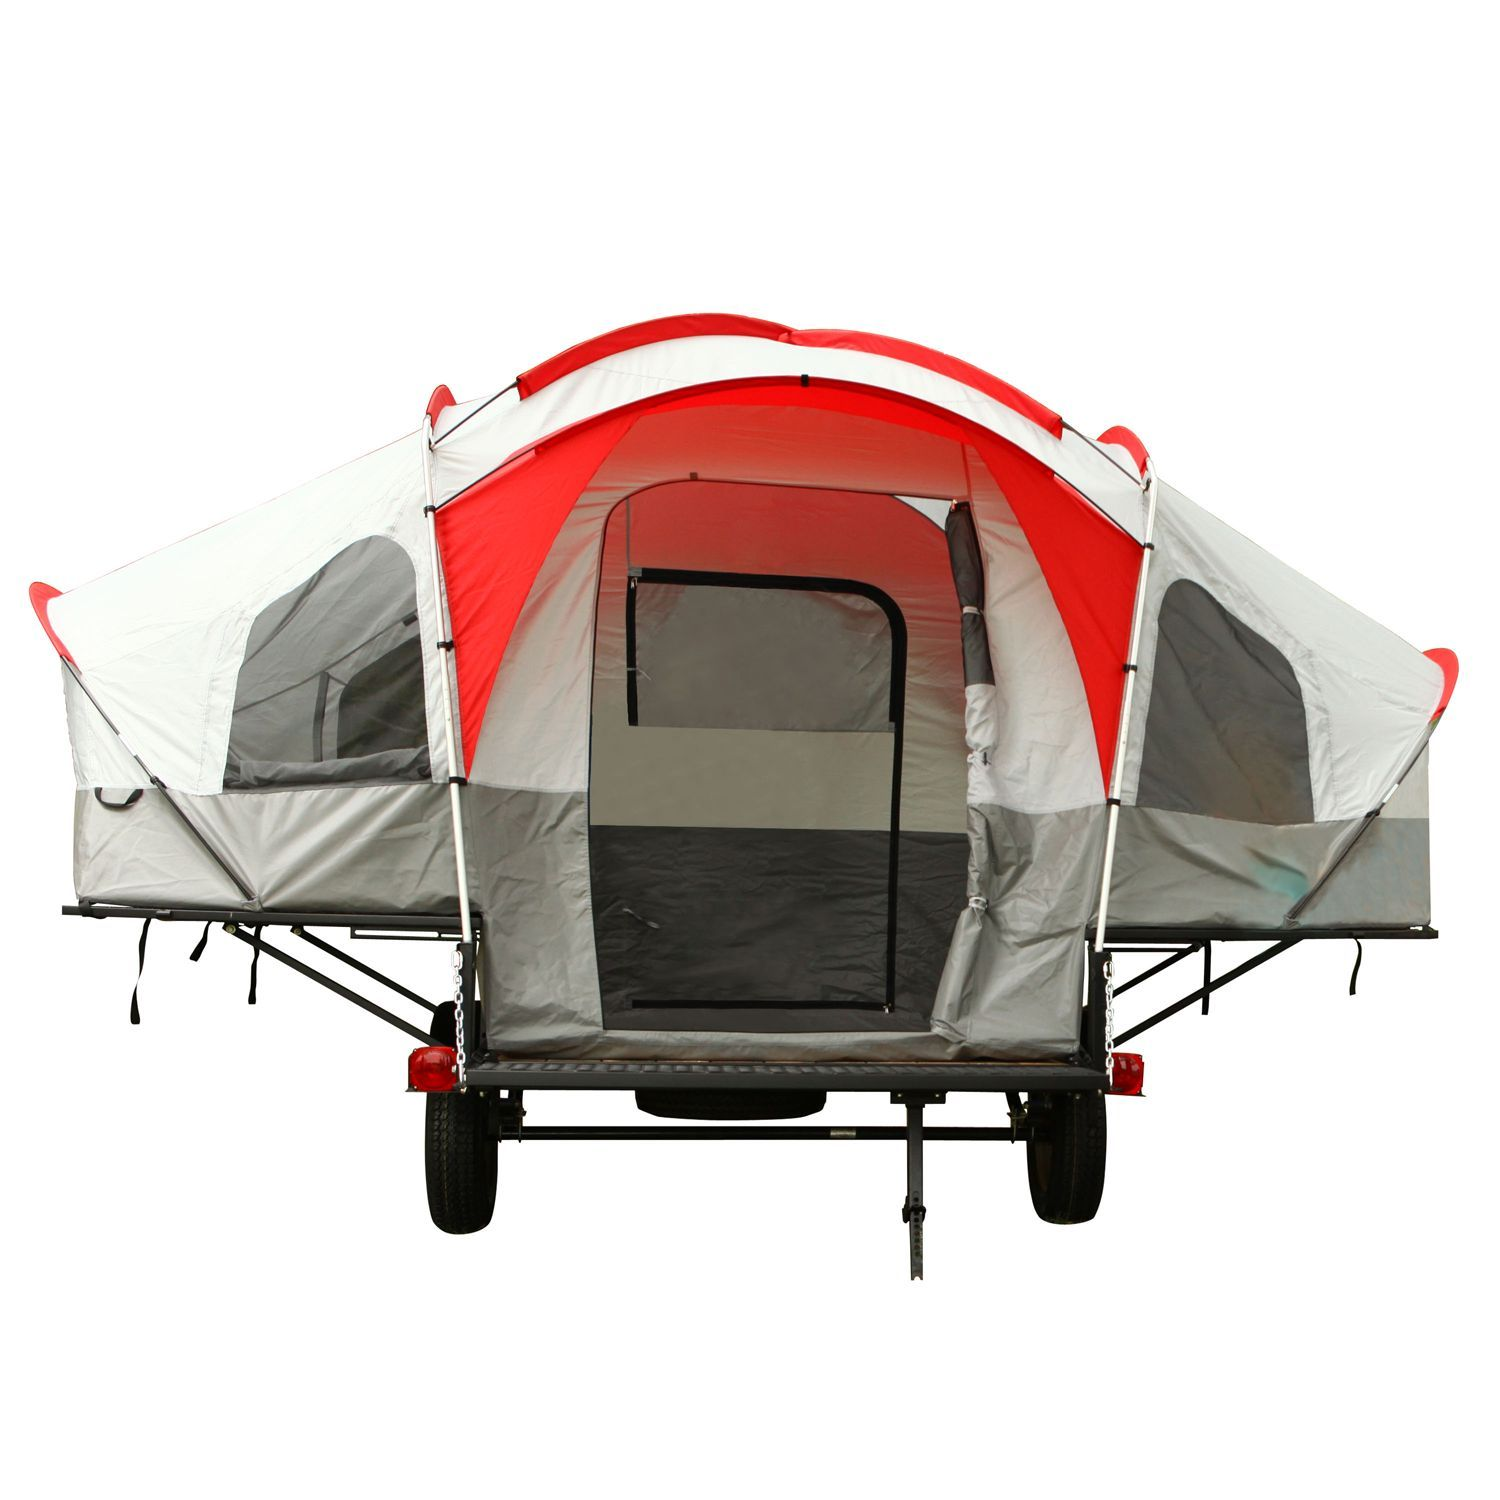 Lifetime Deluxe Tent Trailer Kit (Grey/Red)  Pop Up C&er  sc 1 st  Pinterest & Lifetime® Tent Trailer Kit - Samu0027s Club Itu0027s a trailer used for ...